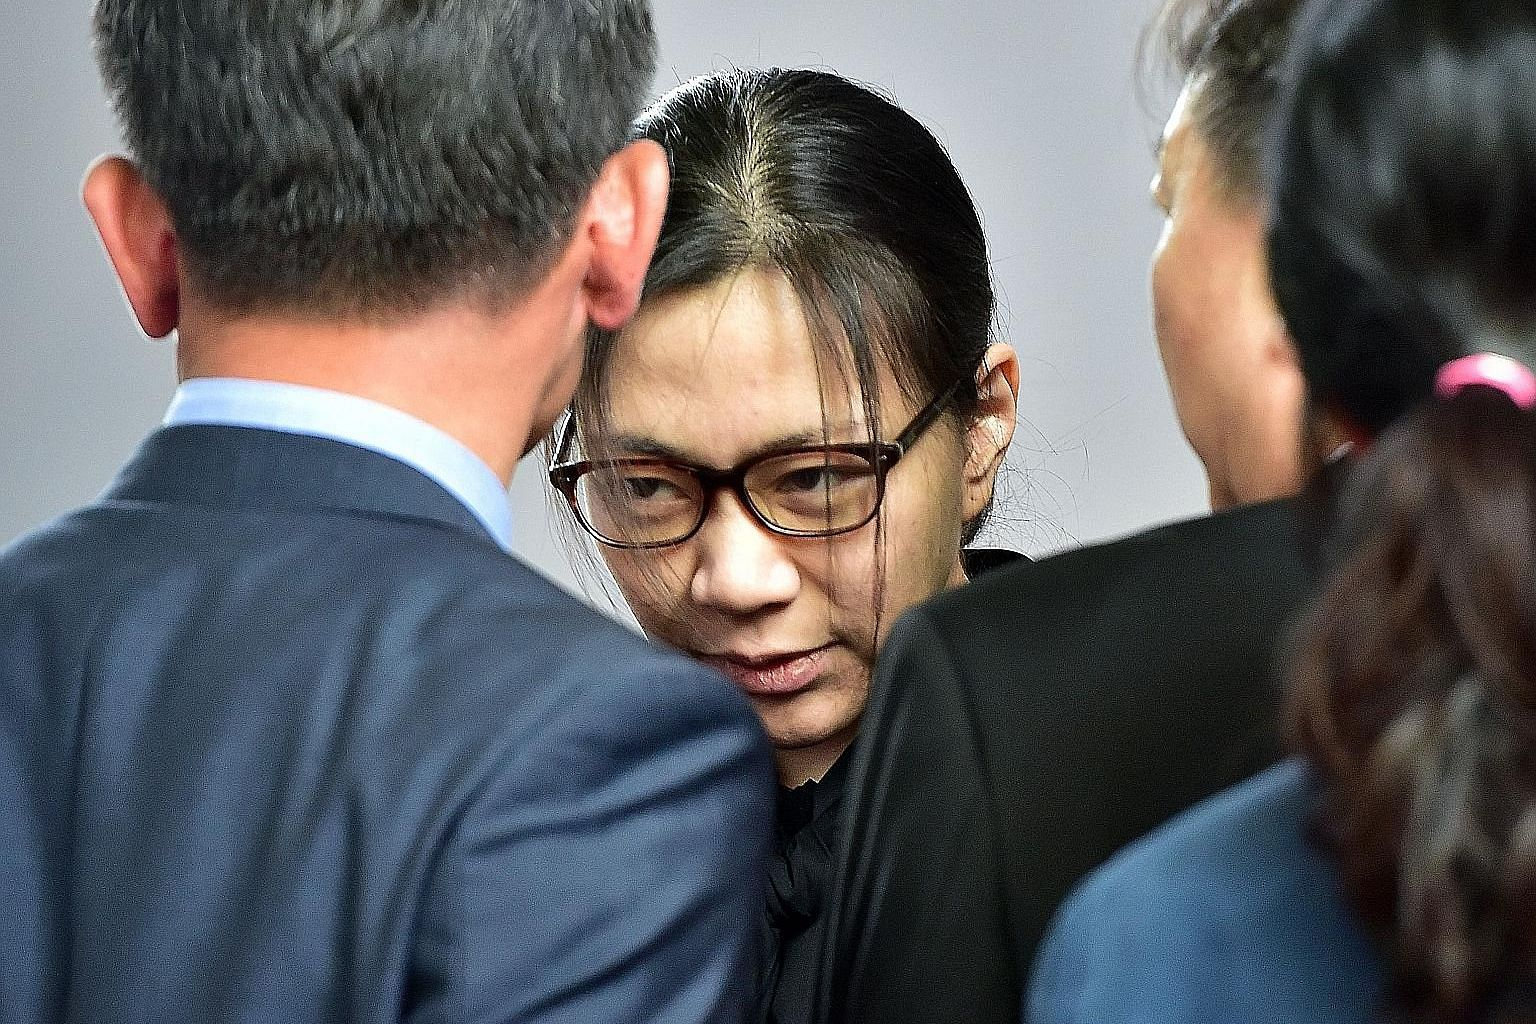 Ms Cho Hyun-ah has failed to oust her younger brother from the chairmanship of Hanjin KAL, the holding company of the family-controlled conglomerate that includes flag carrier Korean Air. PHOTO: AGENCE FRANCE-PRESSE